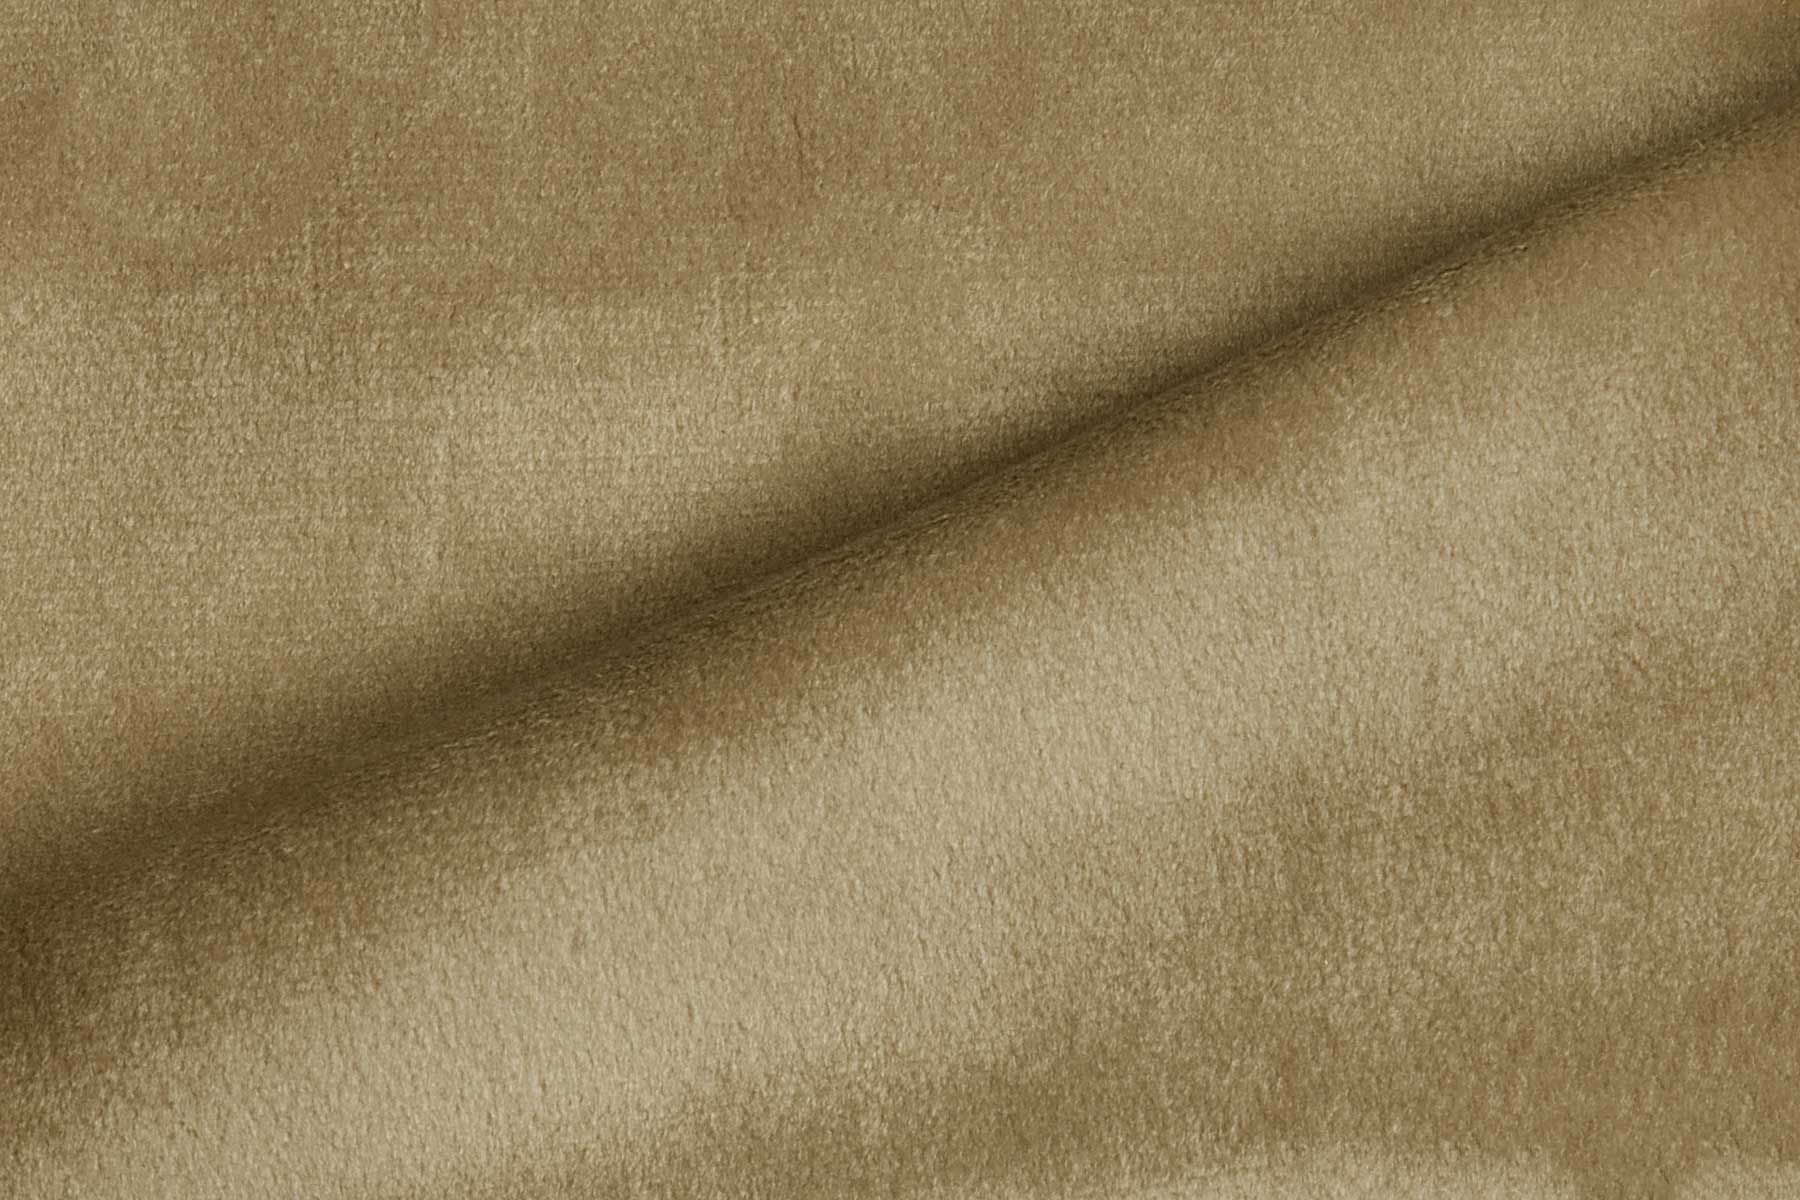 RADIANCE VELVET PLAZA TAUPE Fabric by KOKET